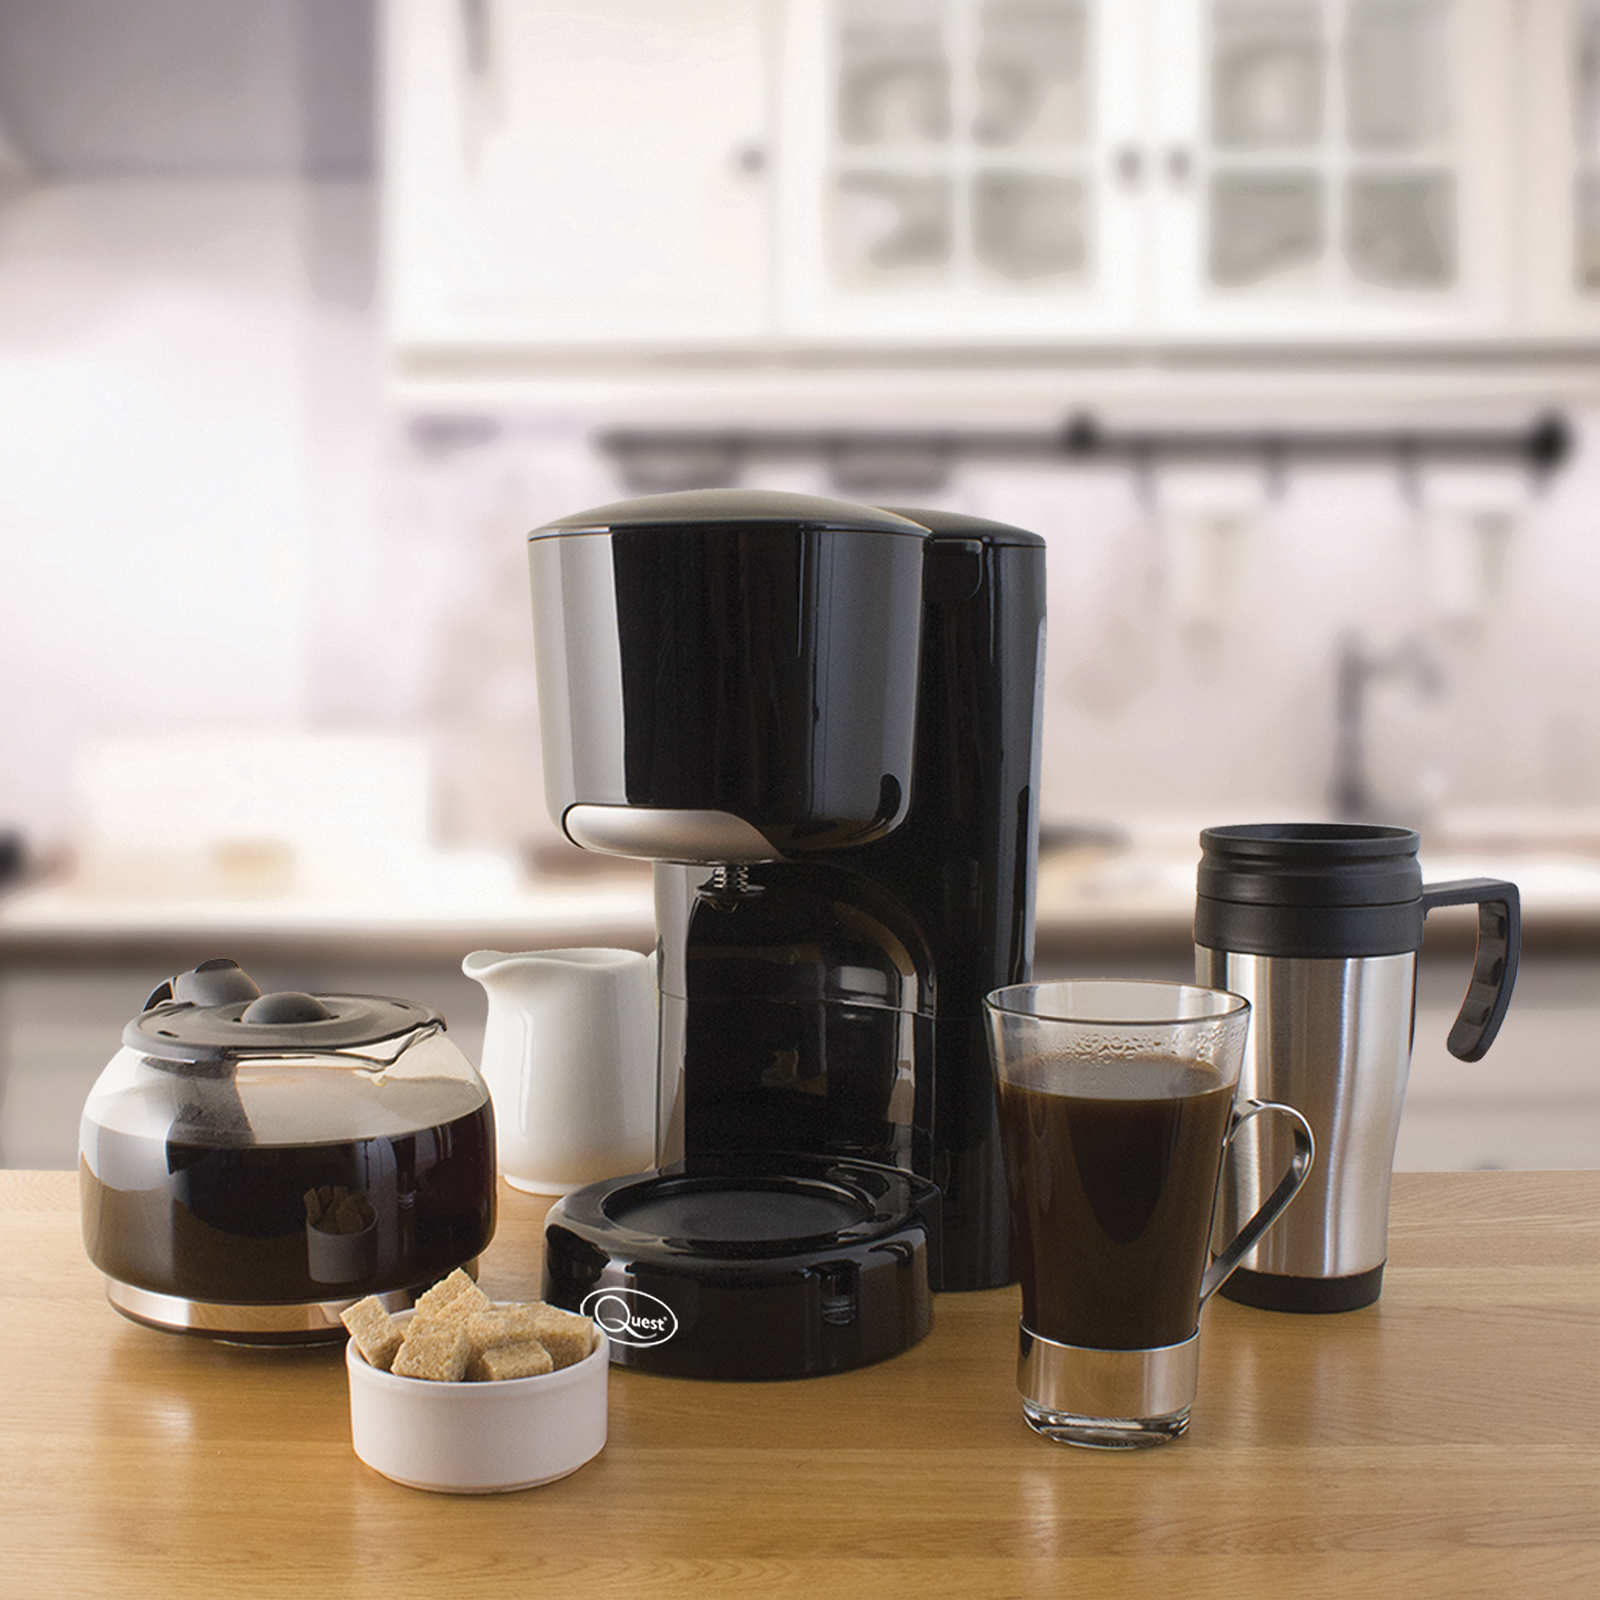 Black coffee maker in the kitchen with a cup of caffee